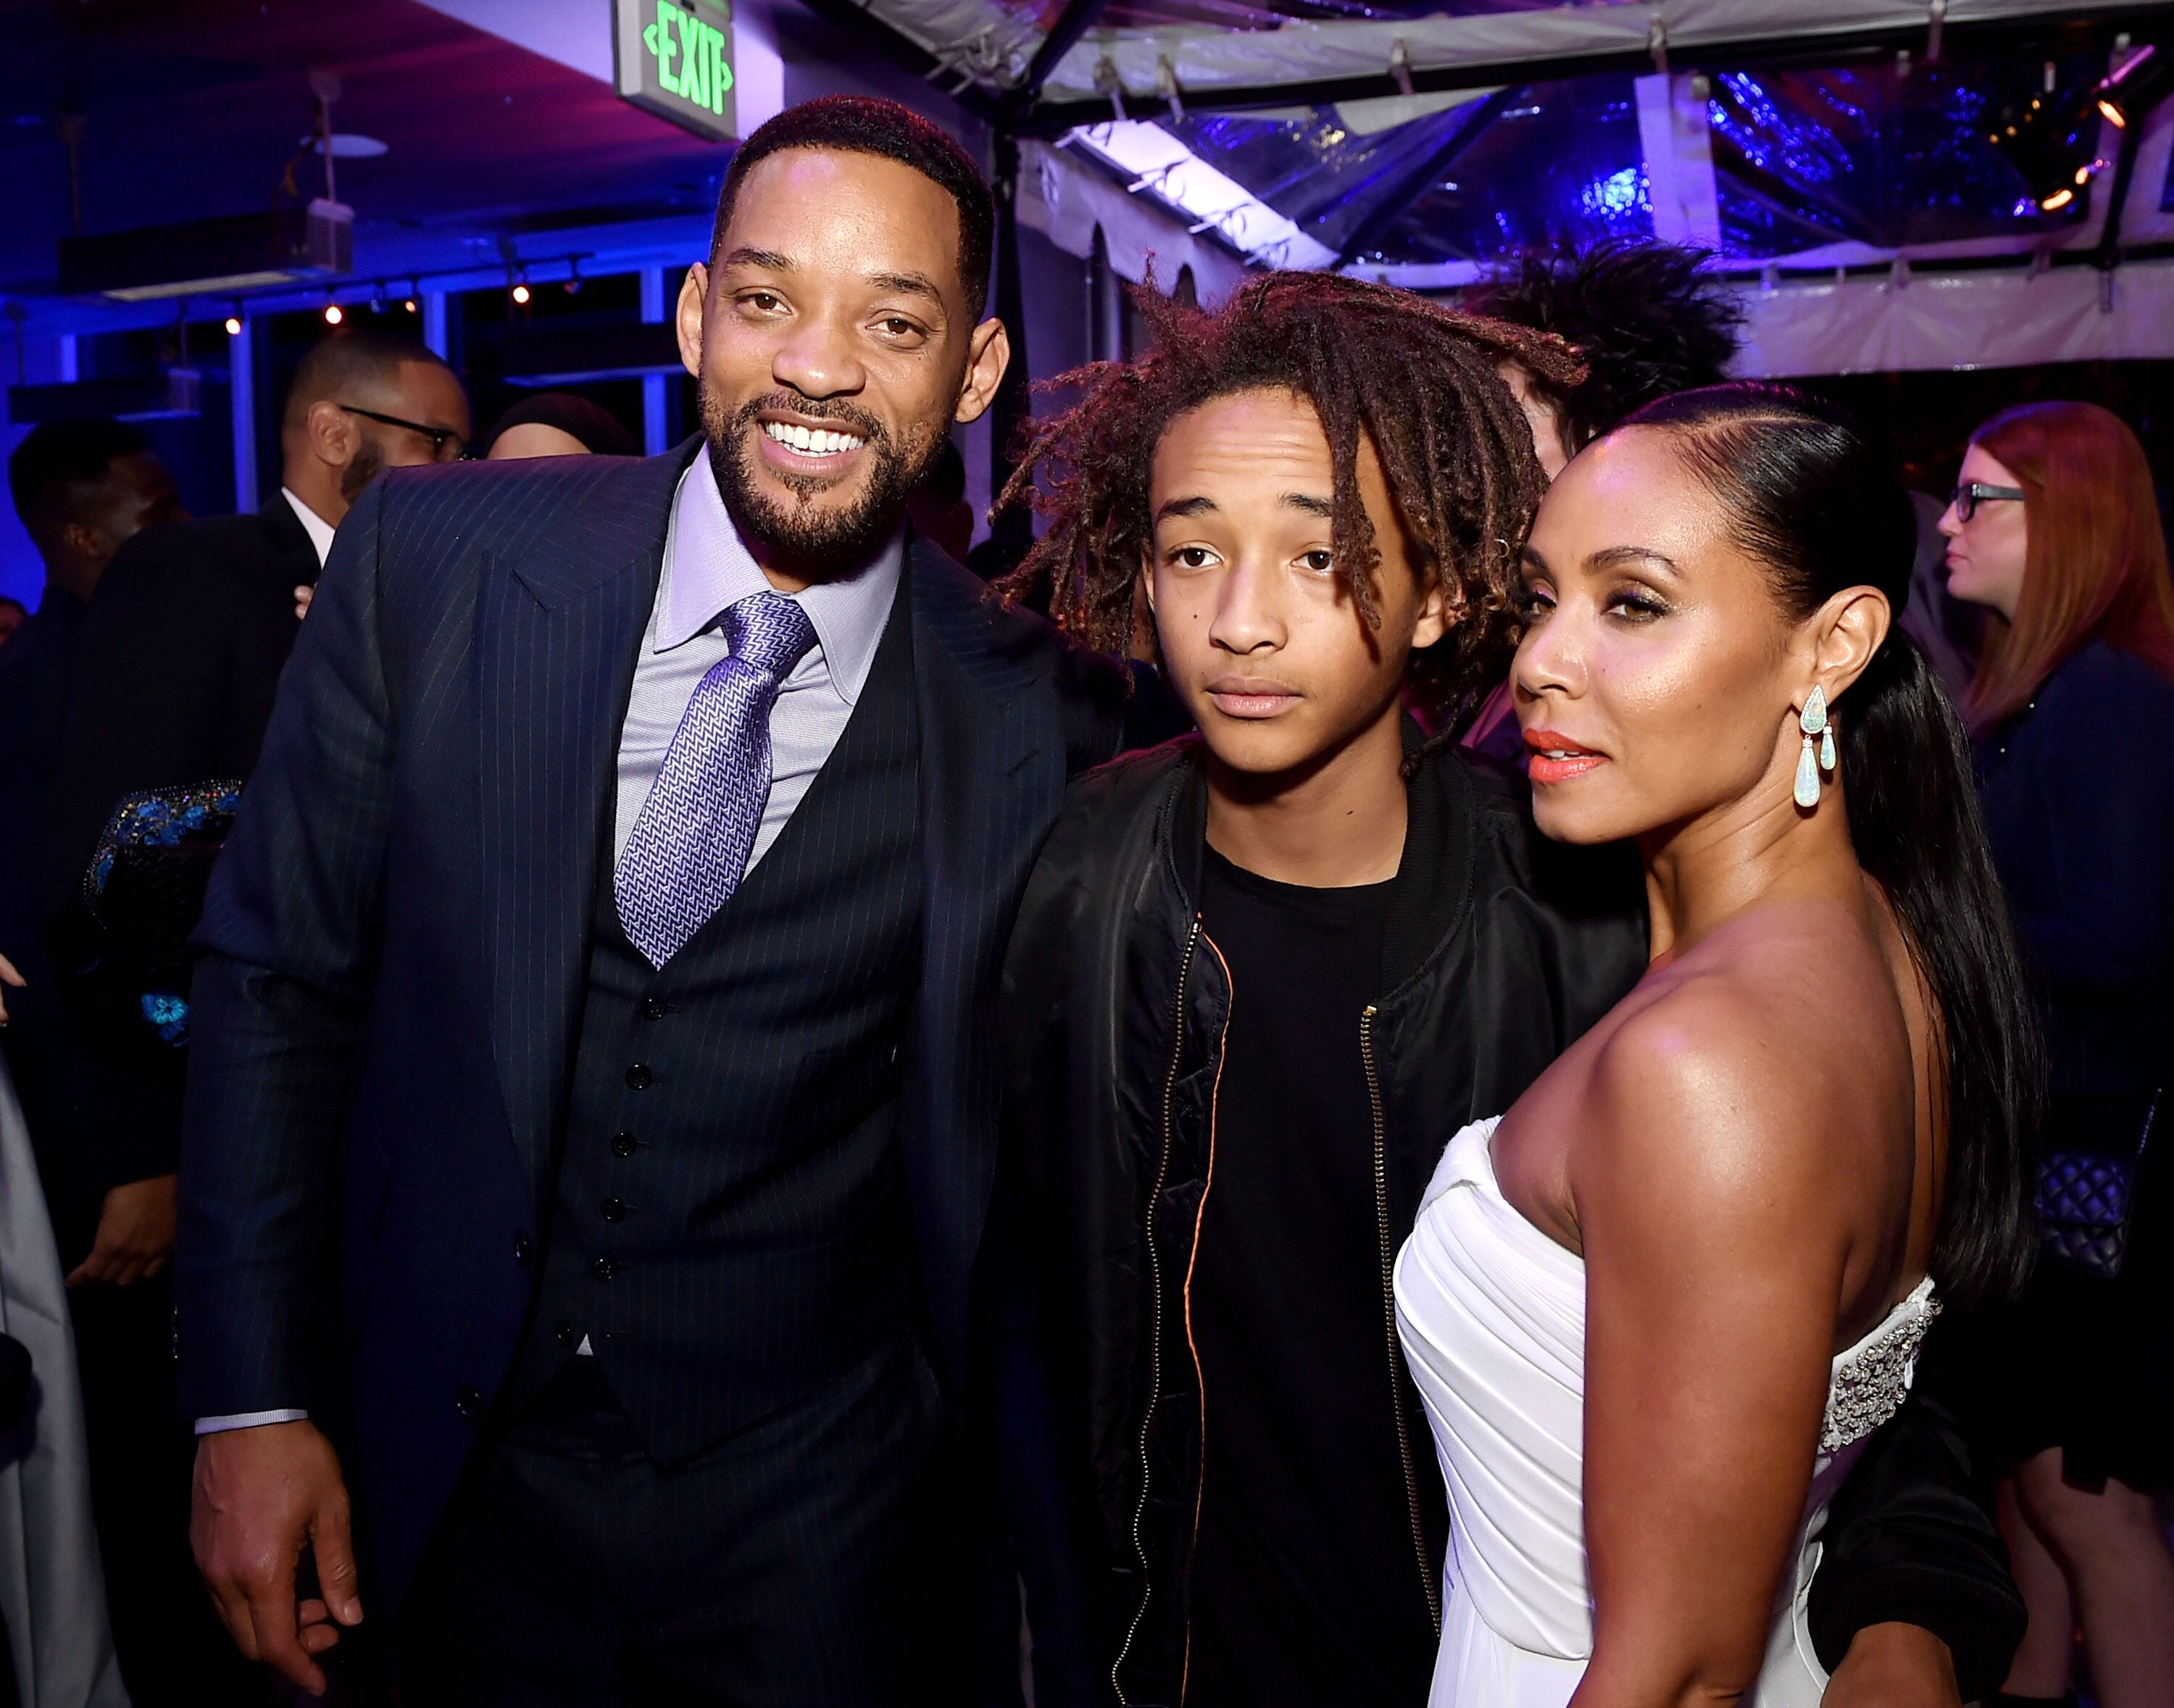 """Will Smith, son Jaden Smith and his wife Jada Pinkett Smith pose at the after party for the premiere of Warner Bros. Pictures' """"Focus."""" 